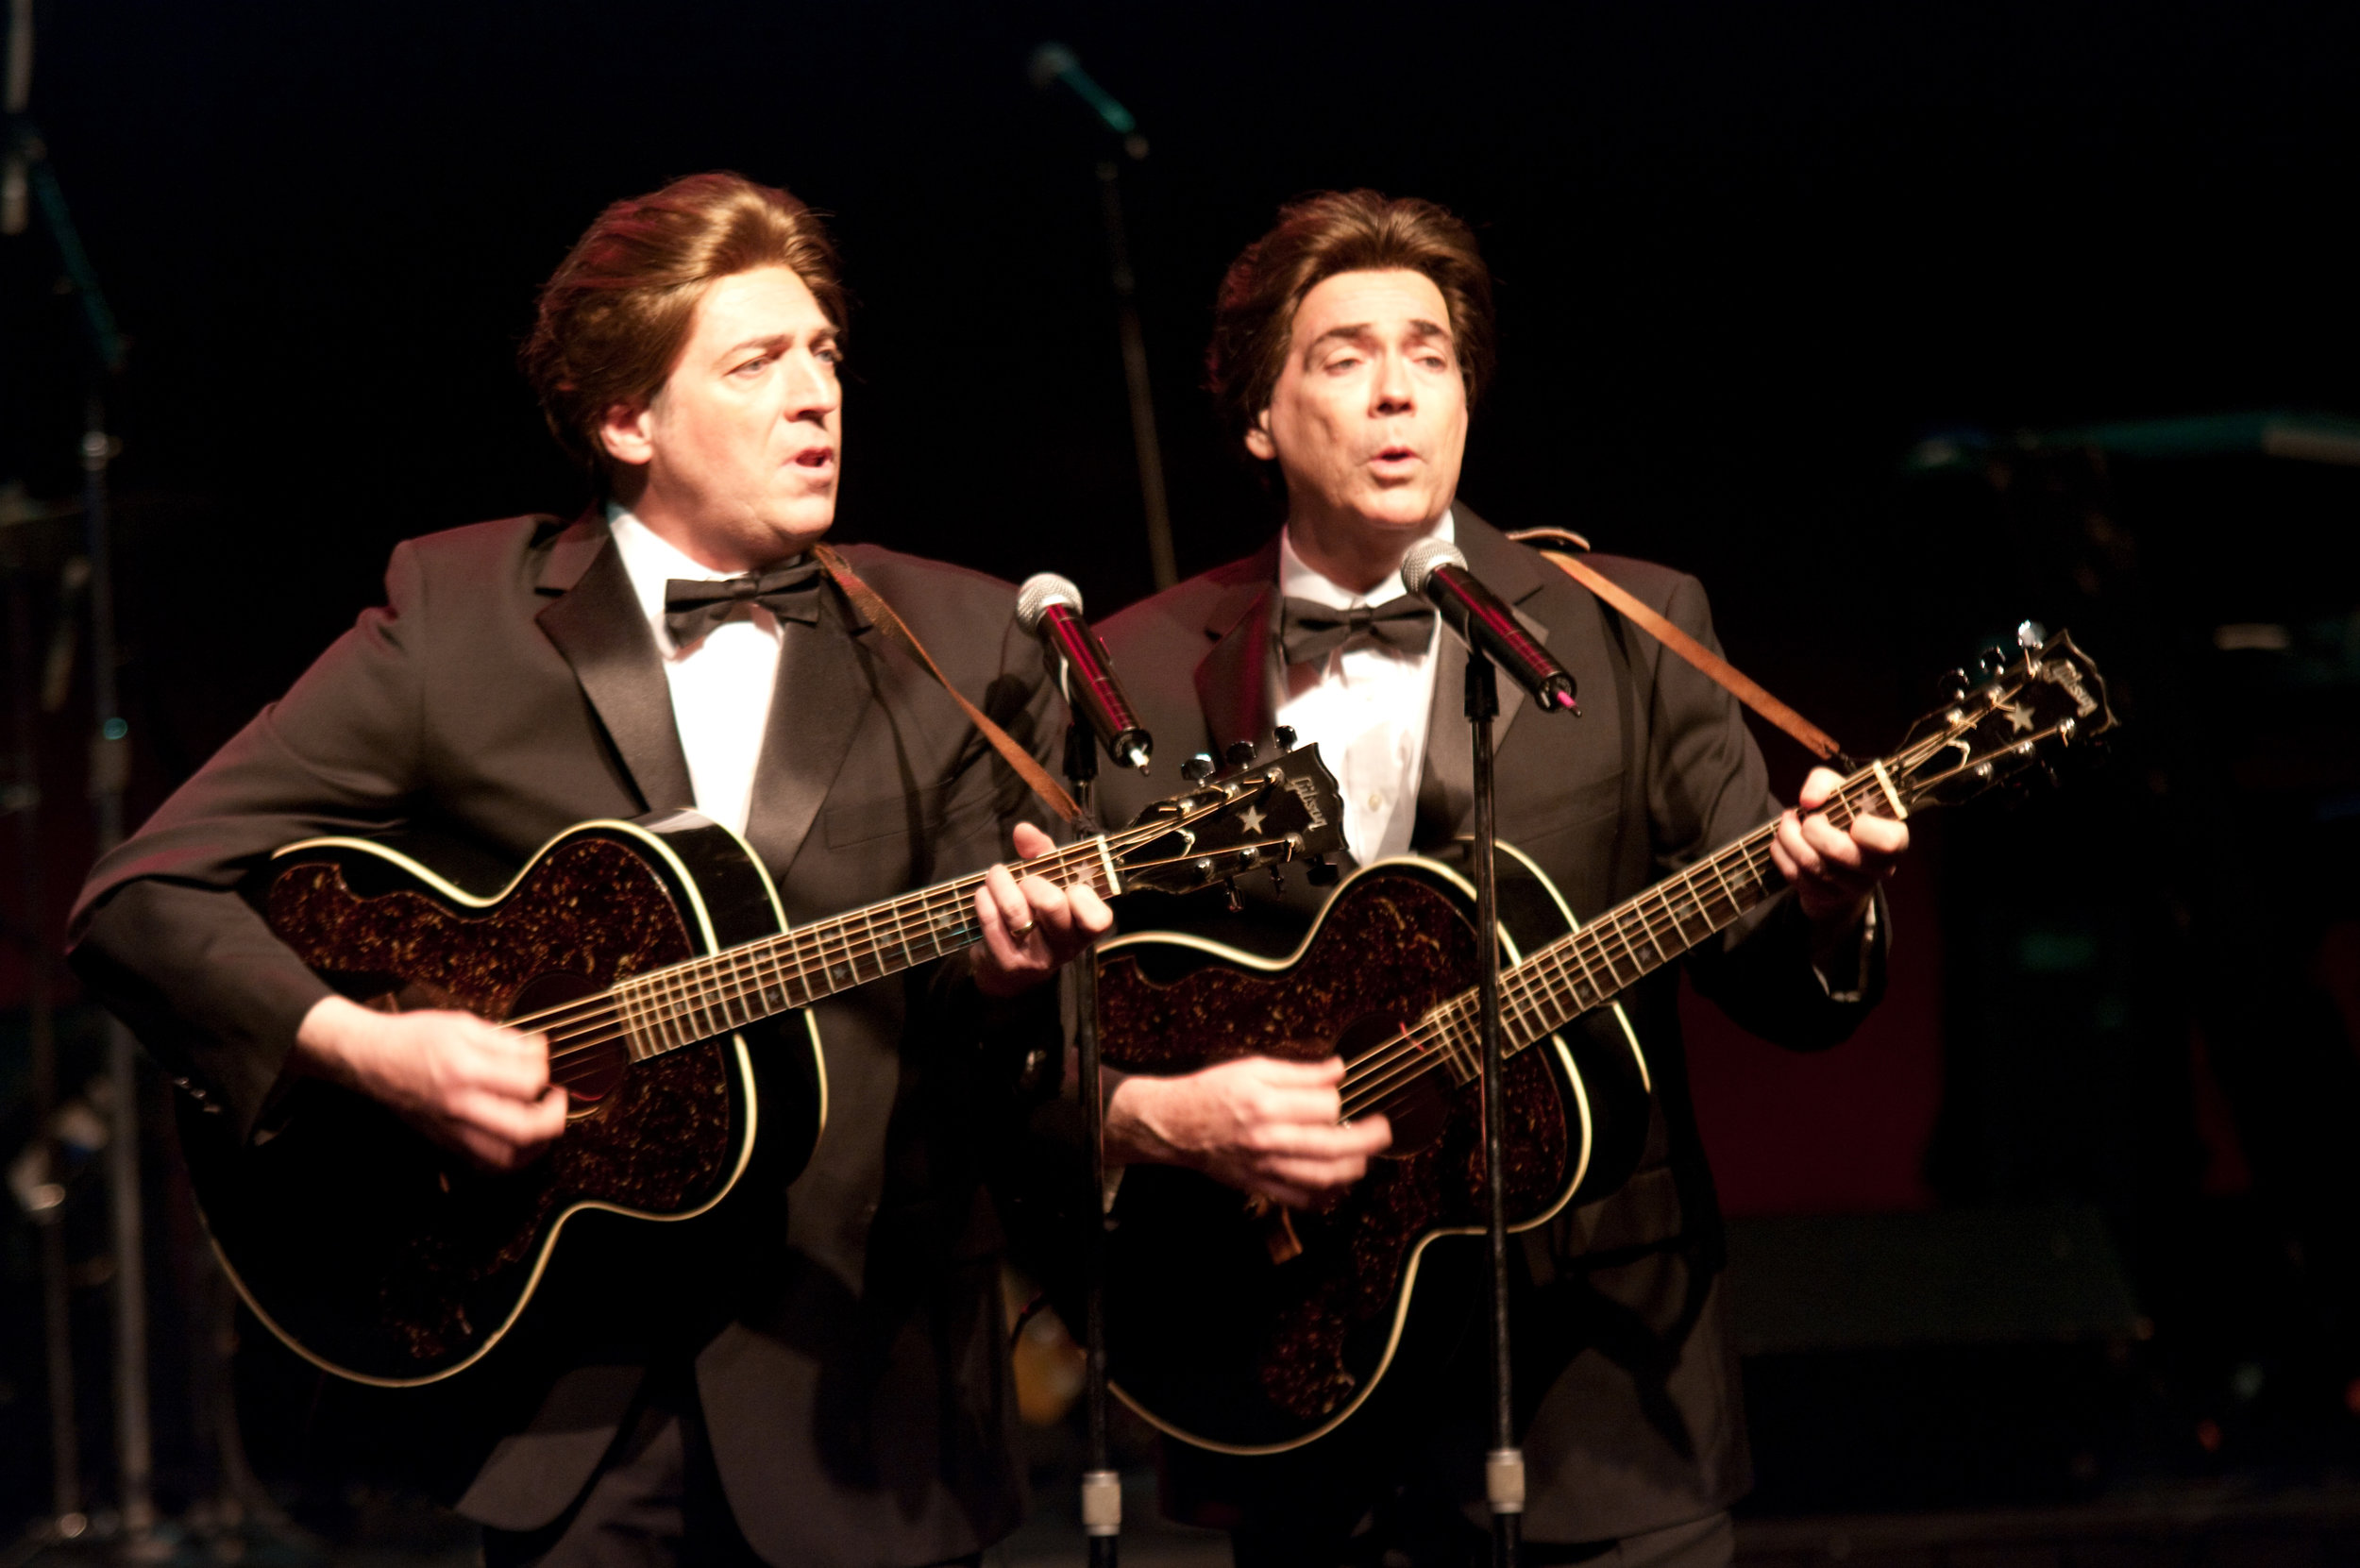 Brian and Tim Mahoney as The Everly Brothers